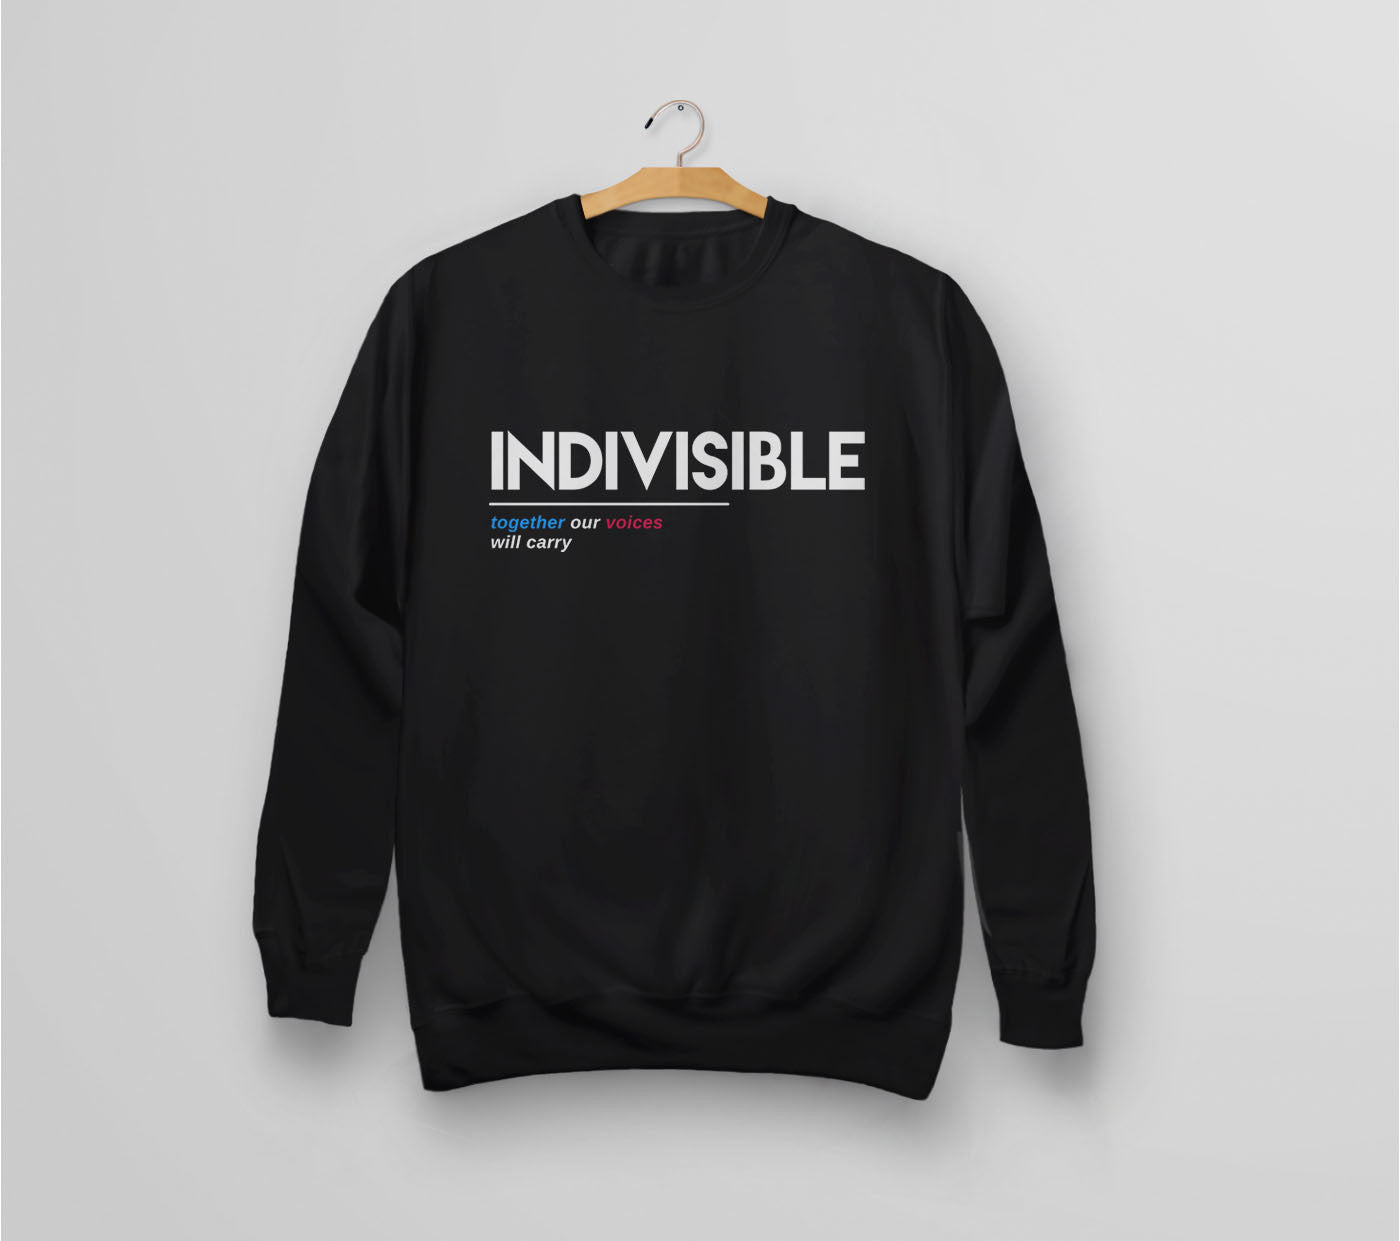 Indivisible sweatshirt